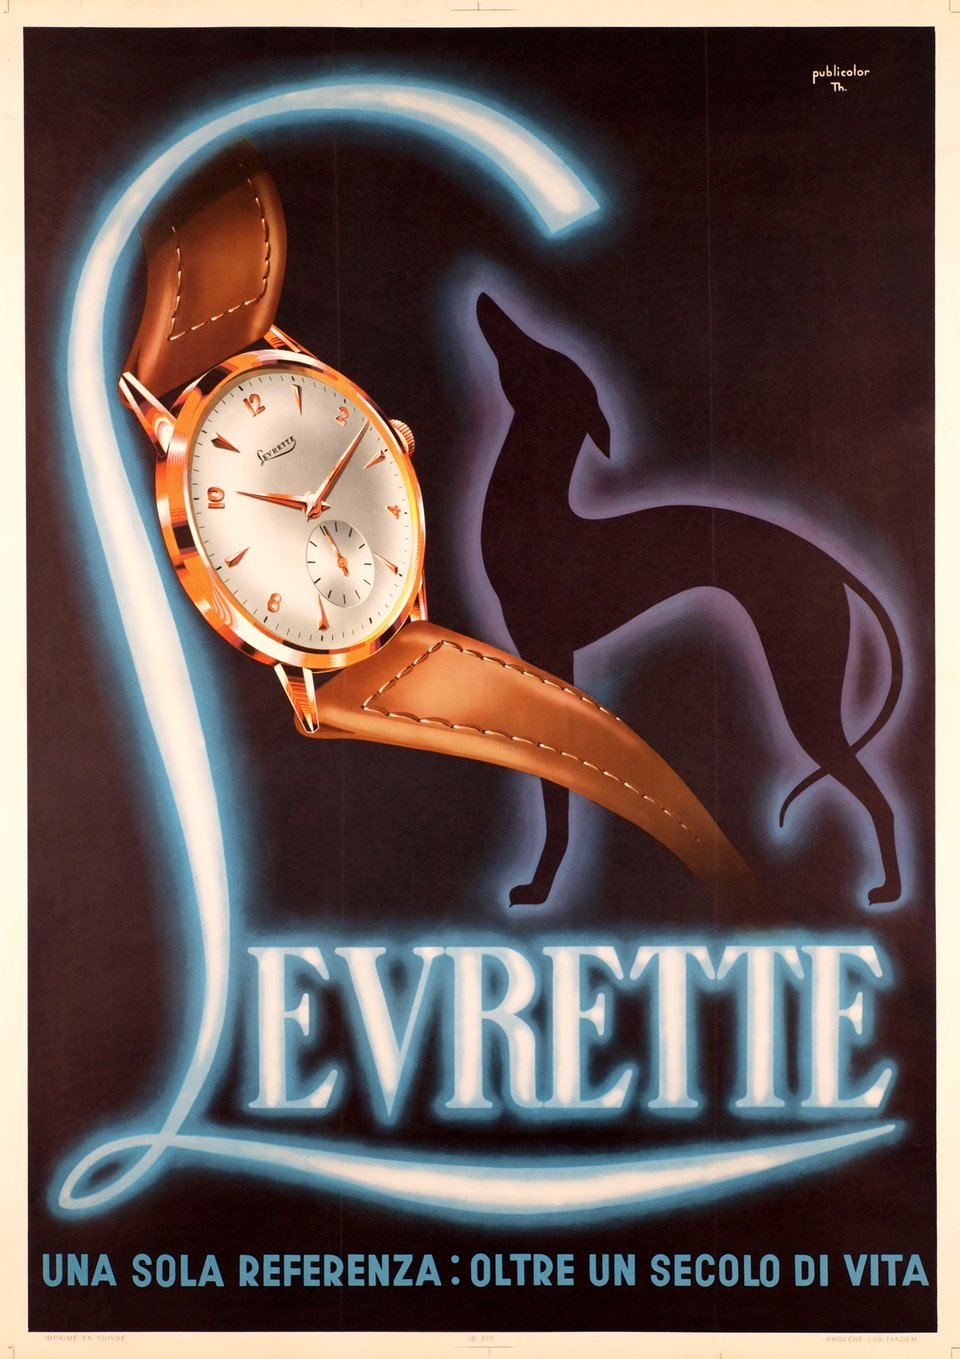 Levrette, watches – Affiche ancienne –  PUBLICOLOR, Th. PUBLICOLOR – 1950